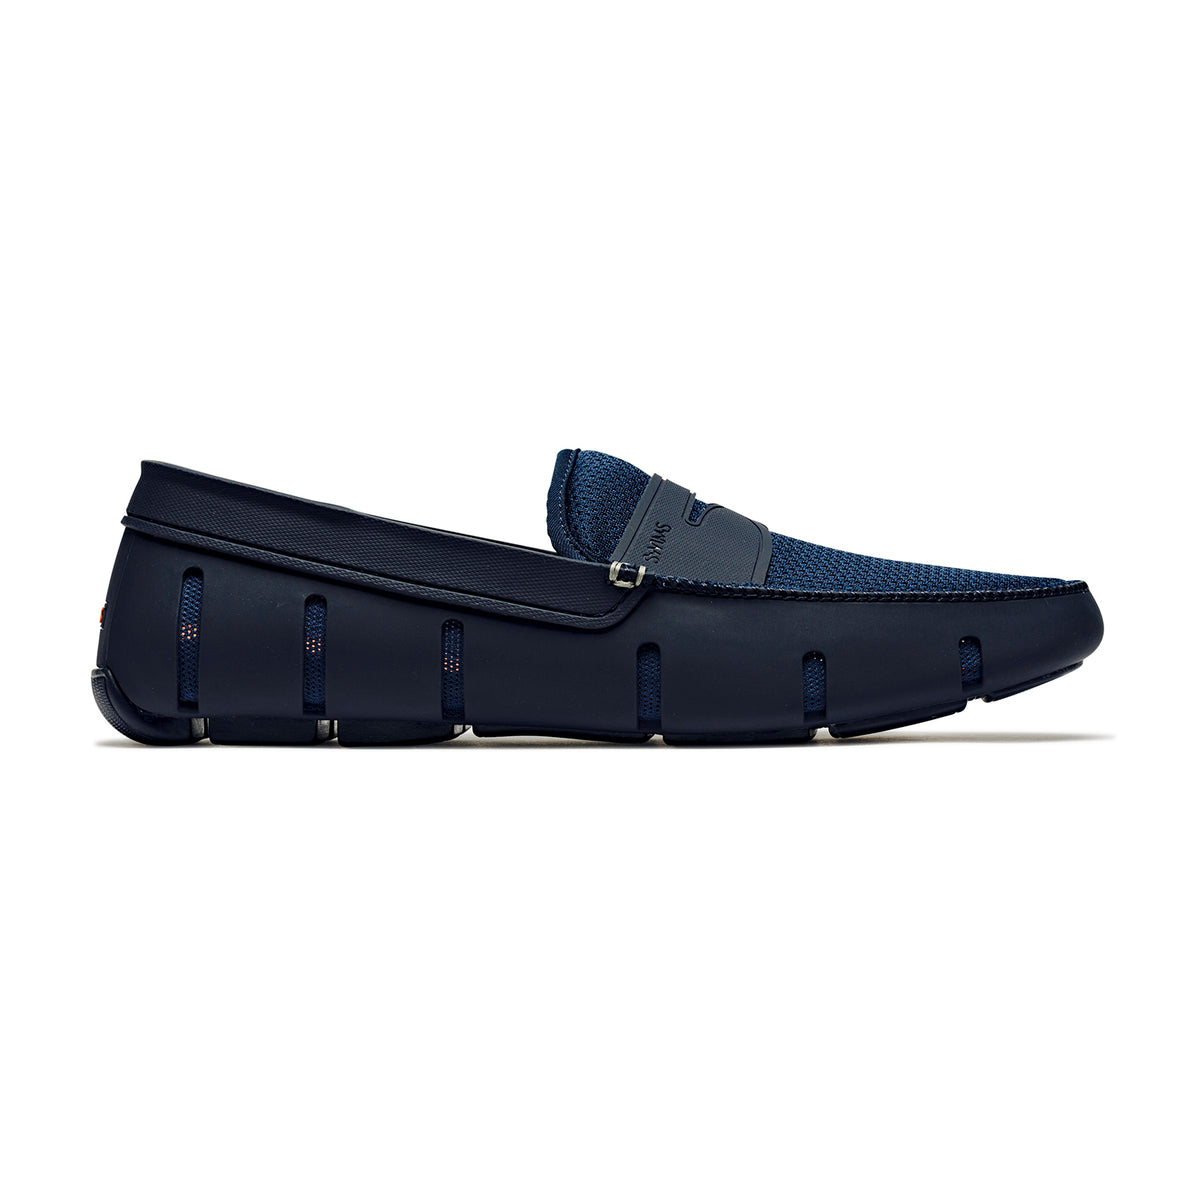 Penny Loafer - background::white,variant::Navy